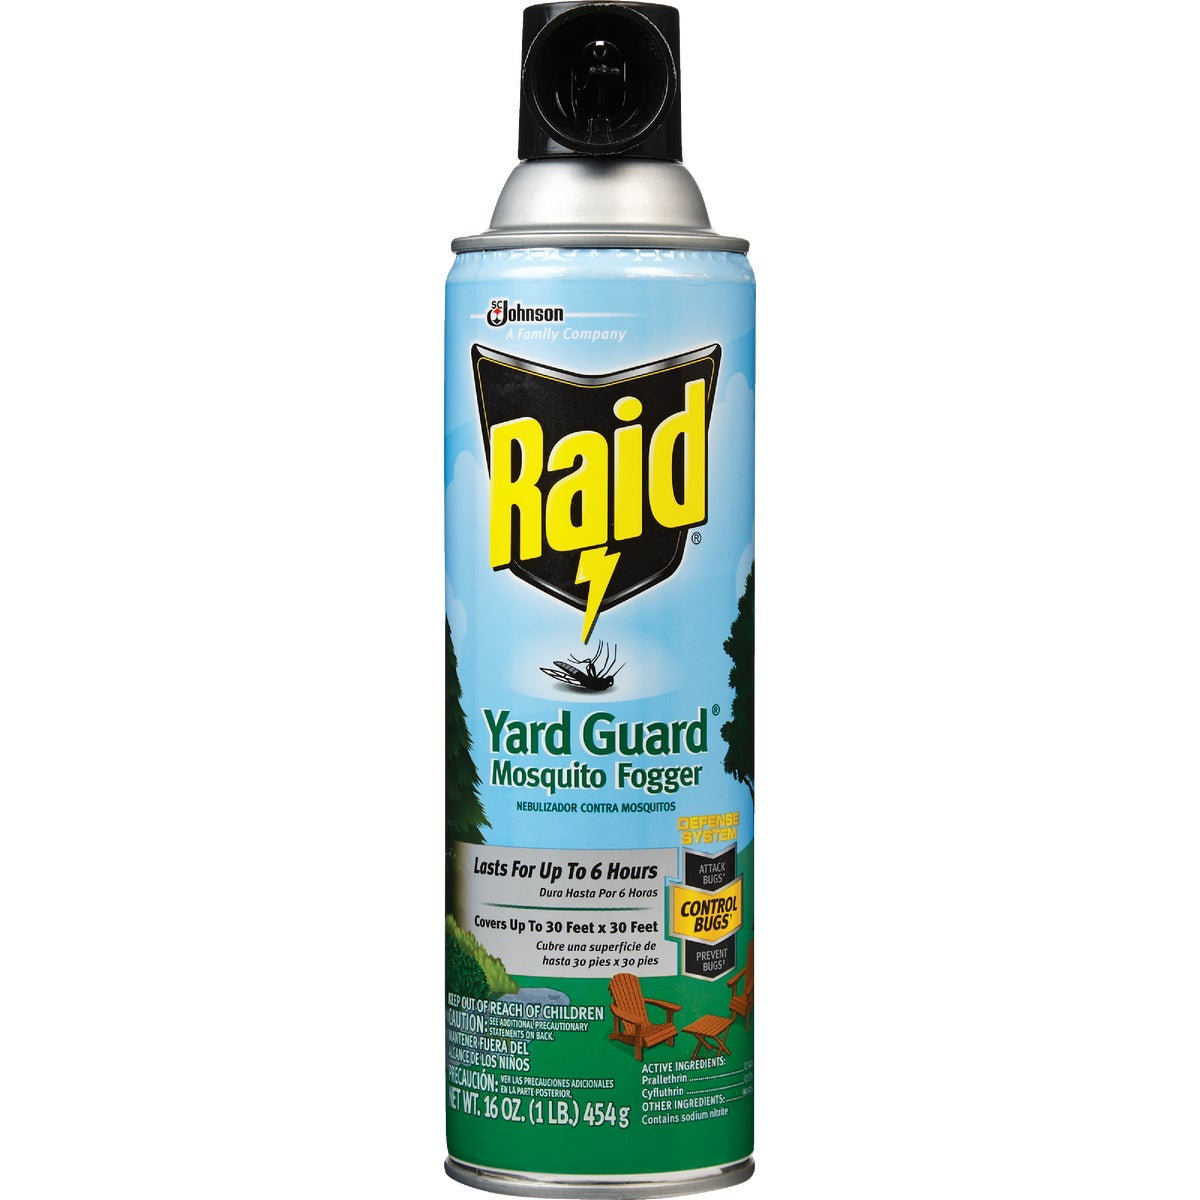 YARD GUARD BUG SPRAY - 1601 by Sc Johnson